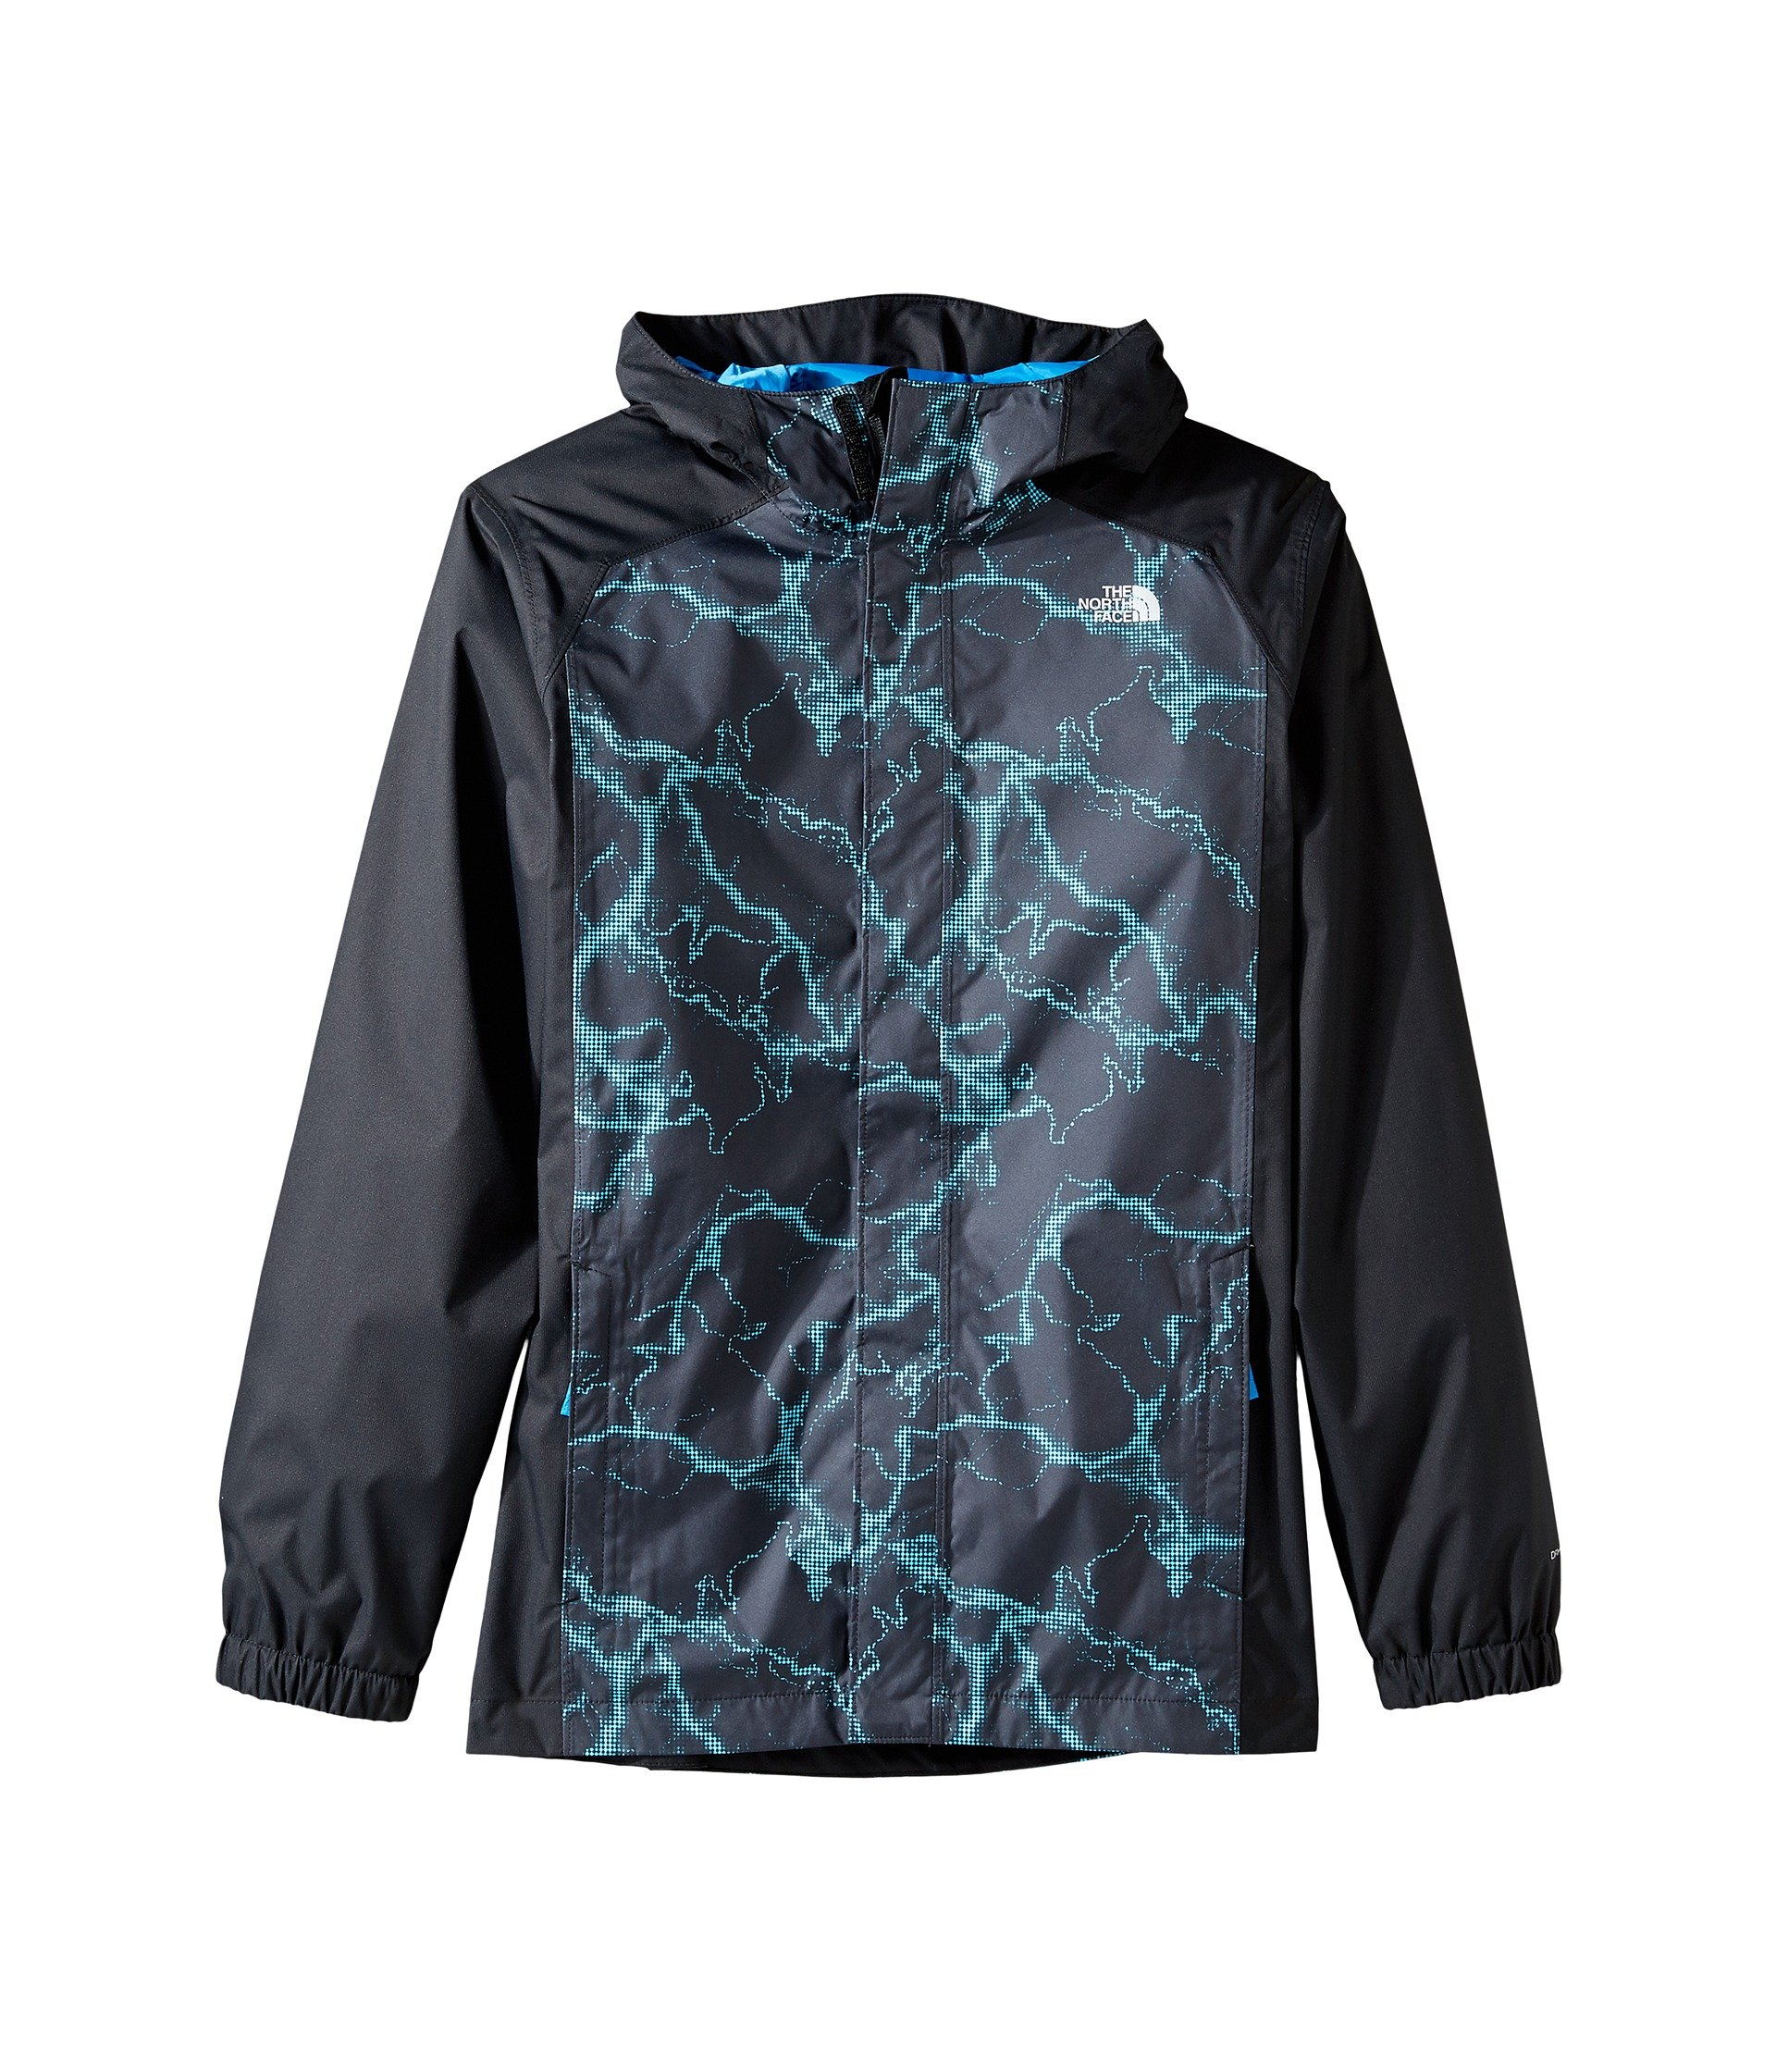 The North Face Boys' Resolve Reflective Jacket Cascade Blue Lightning Print S by The North Face